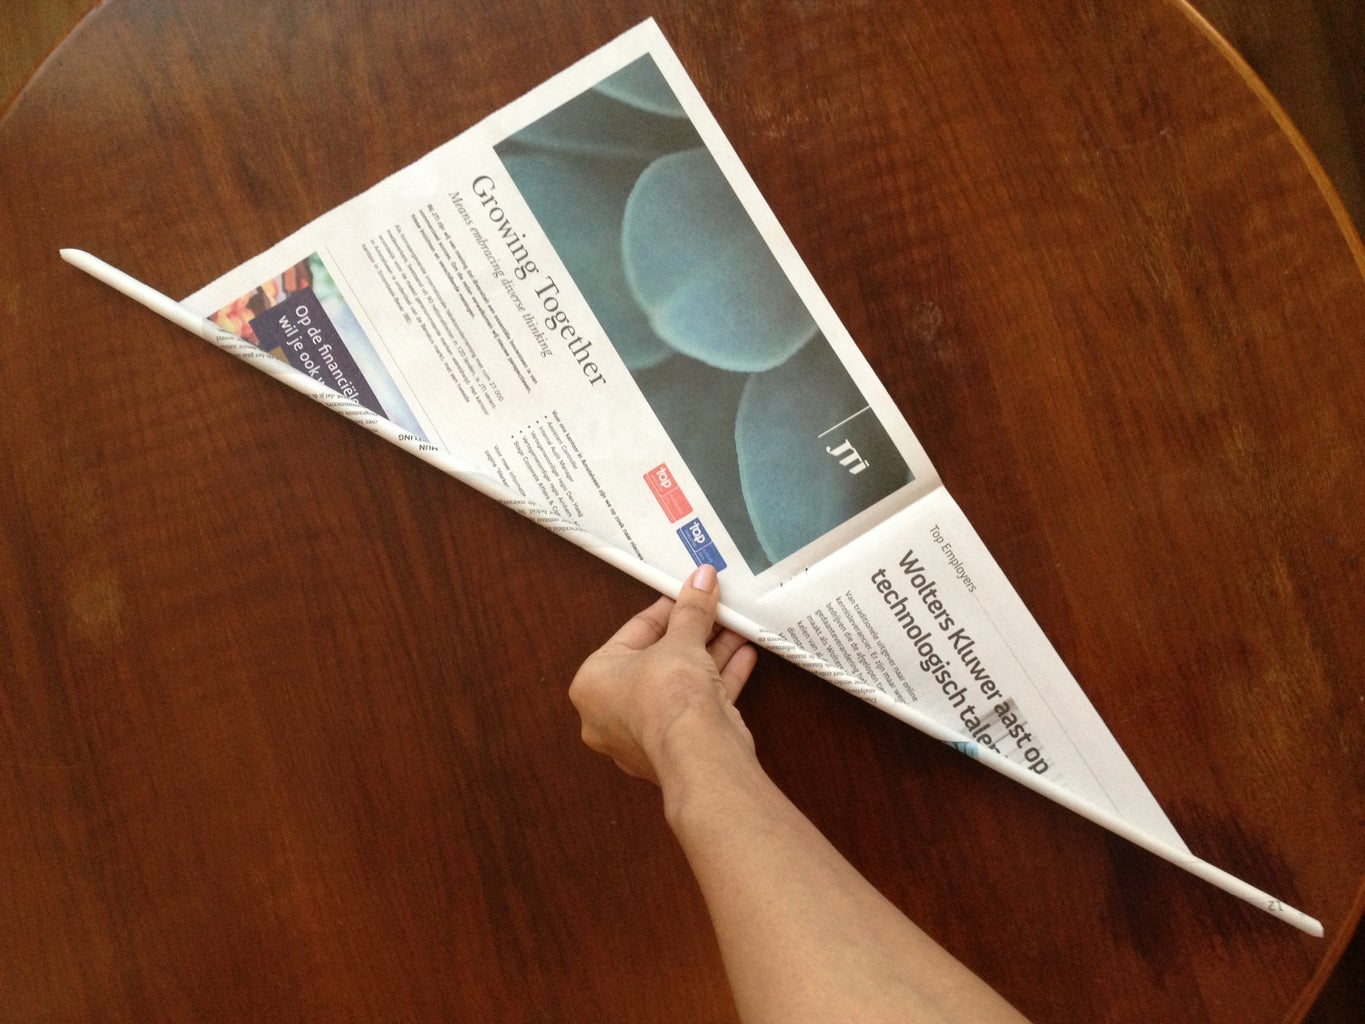 Making Tubes Out of Newspaper